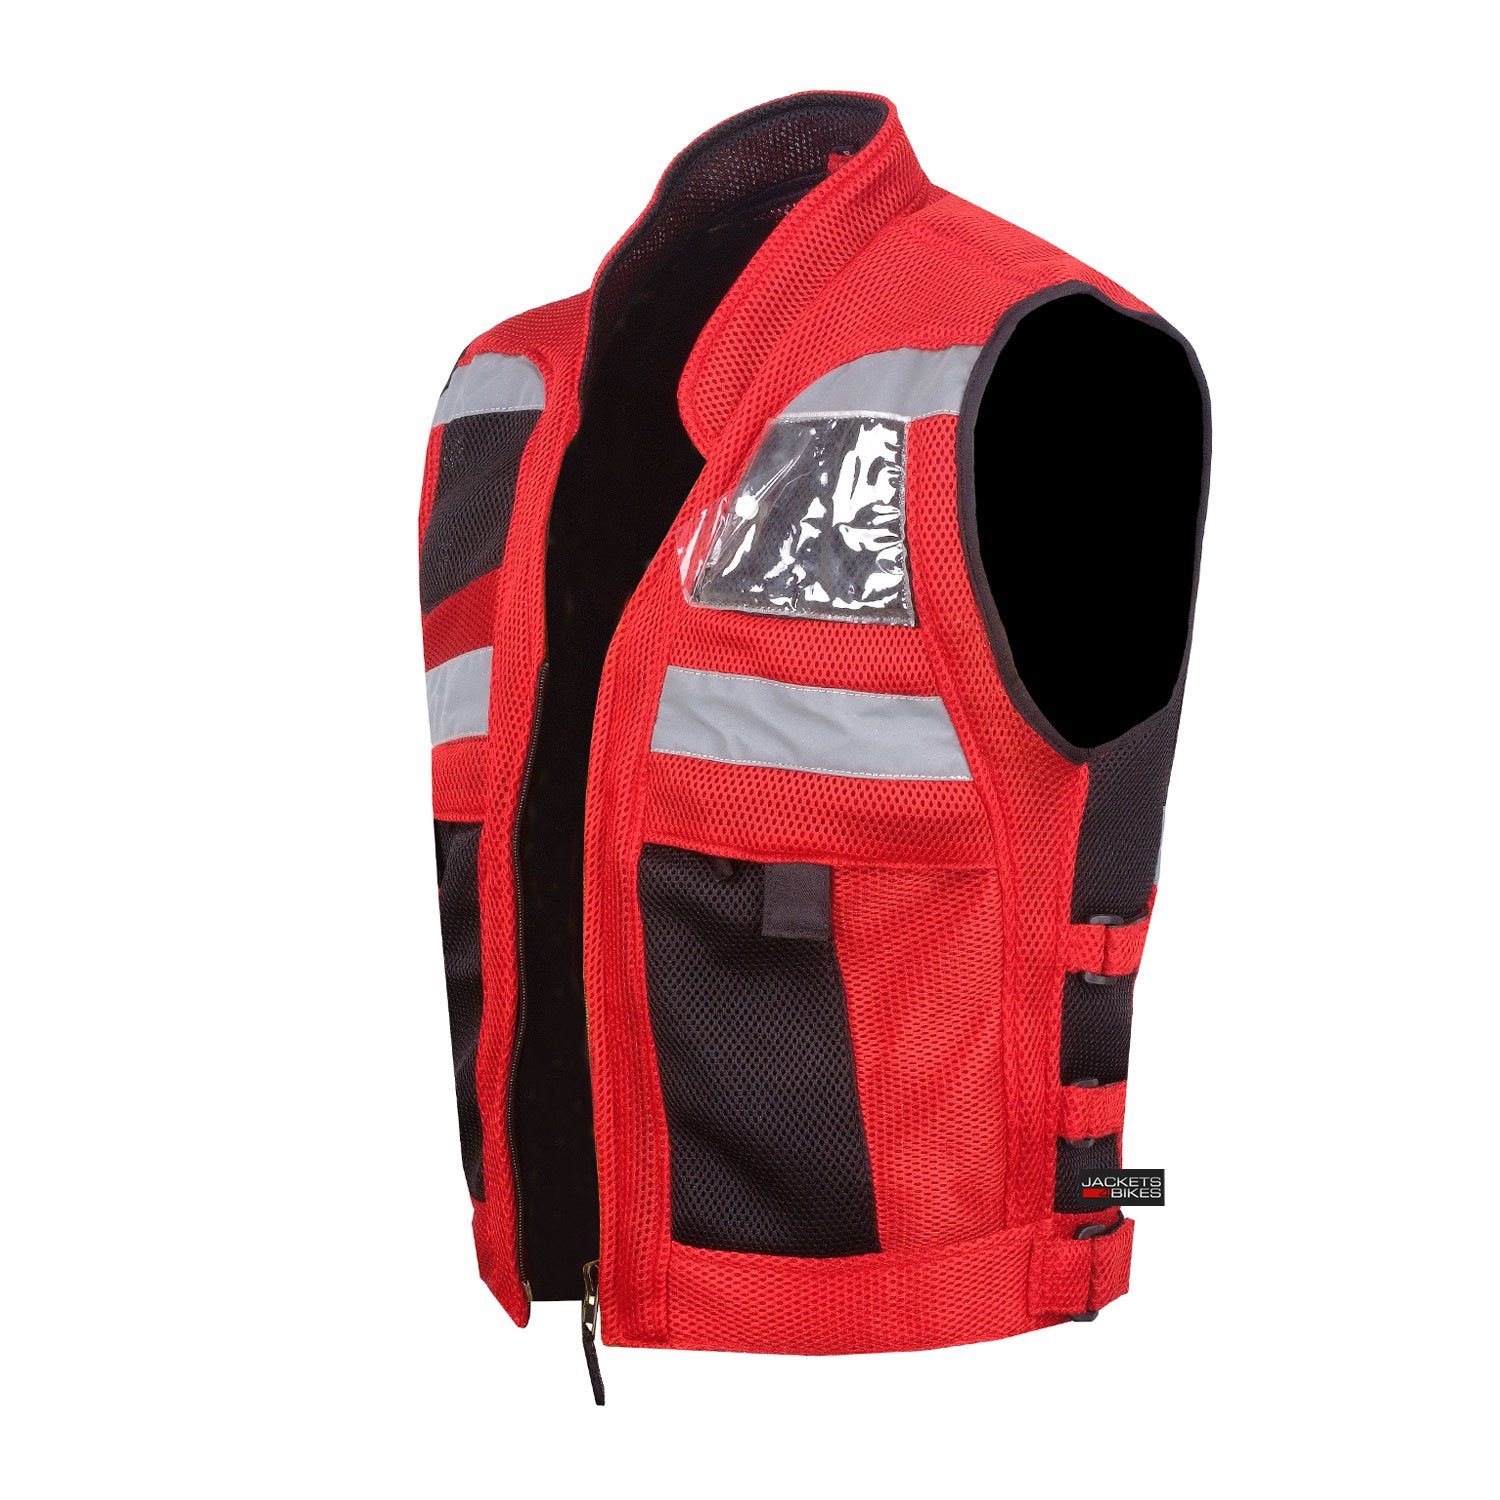 VT MOTORCYCLE RED REFLECTIVE VISIBILITY BASE VEST XL